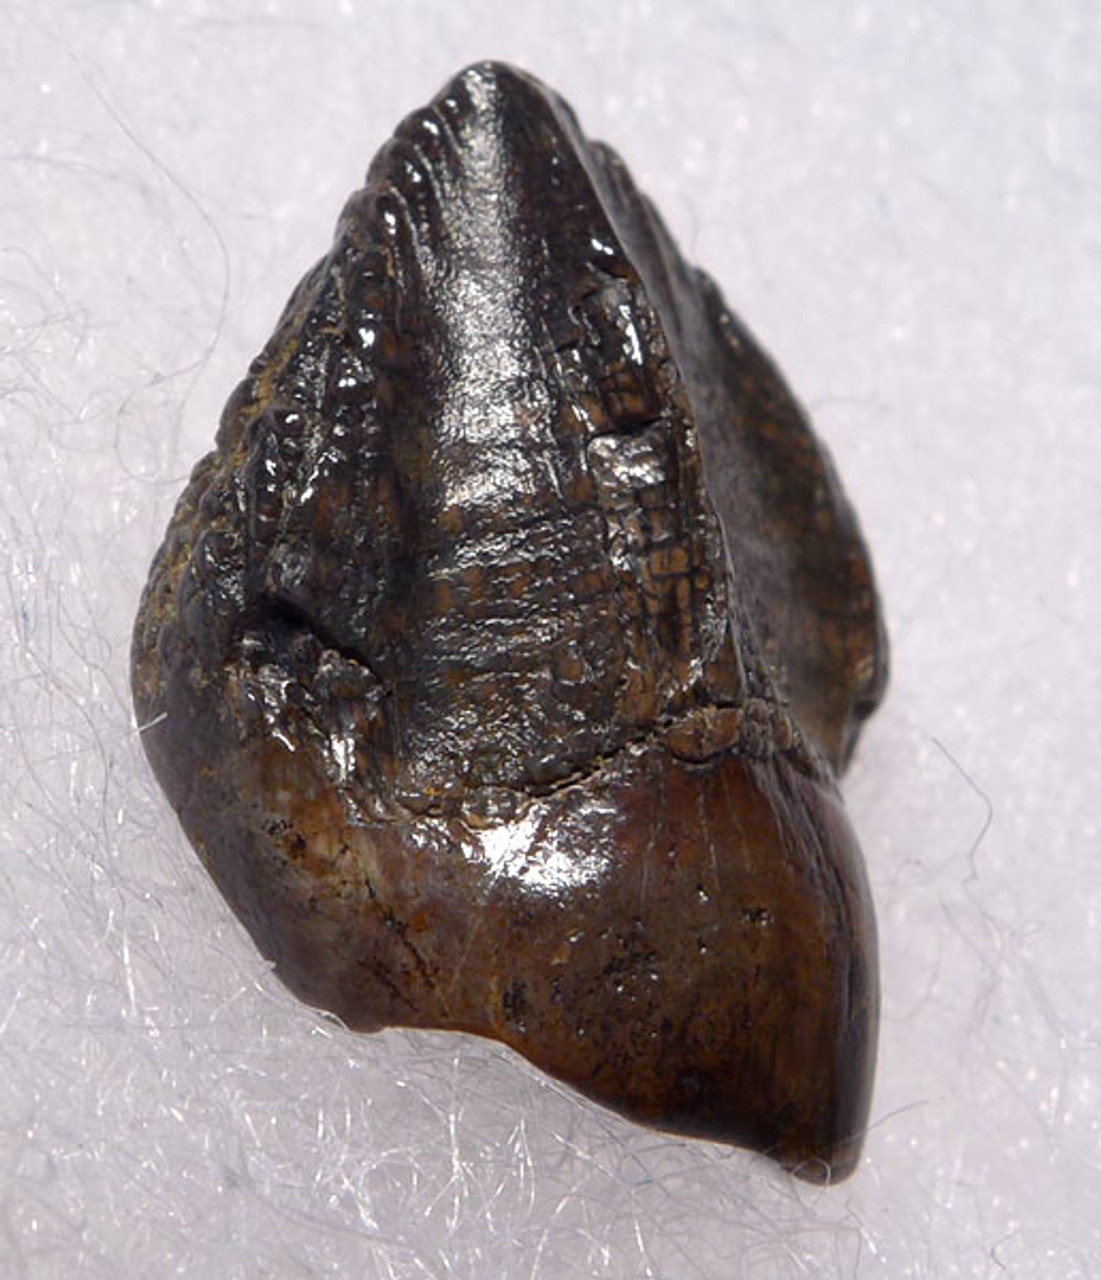 DT19-059 - SUPERB TRICERATOPS DINOSAUR TOOTH FULL CROWN